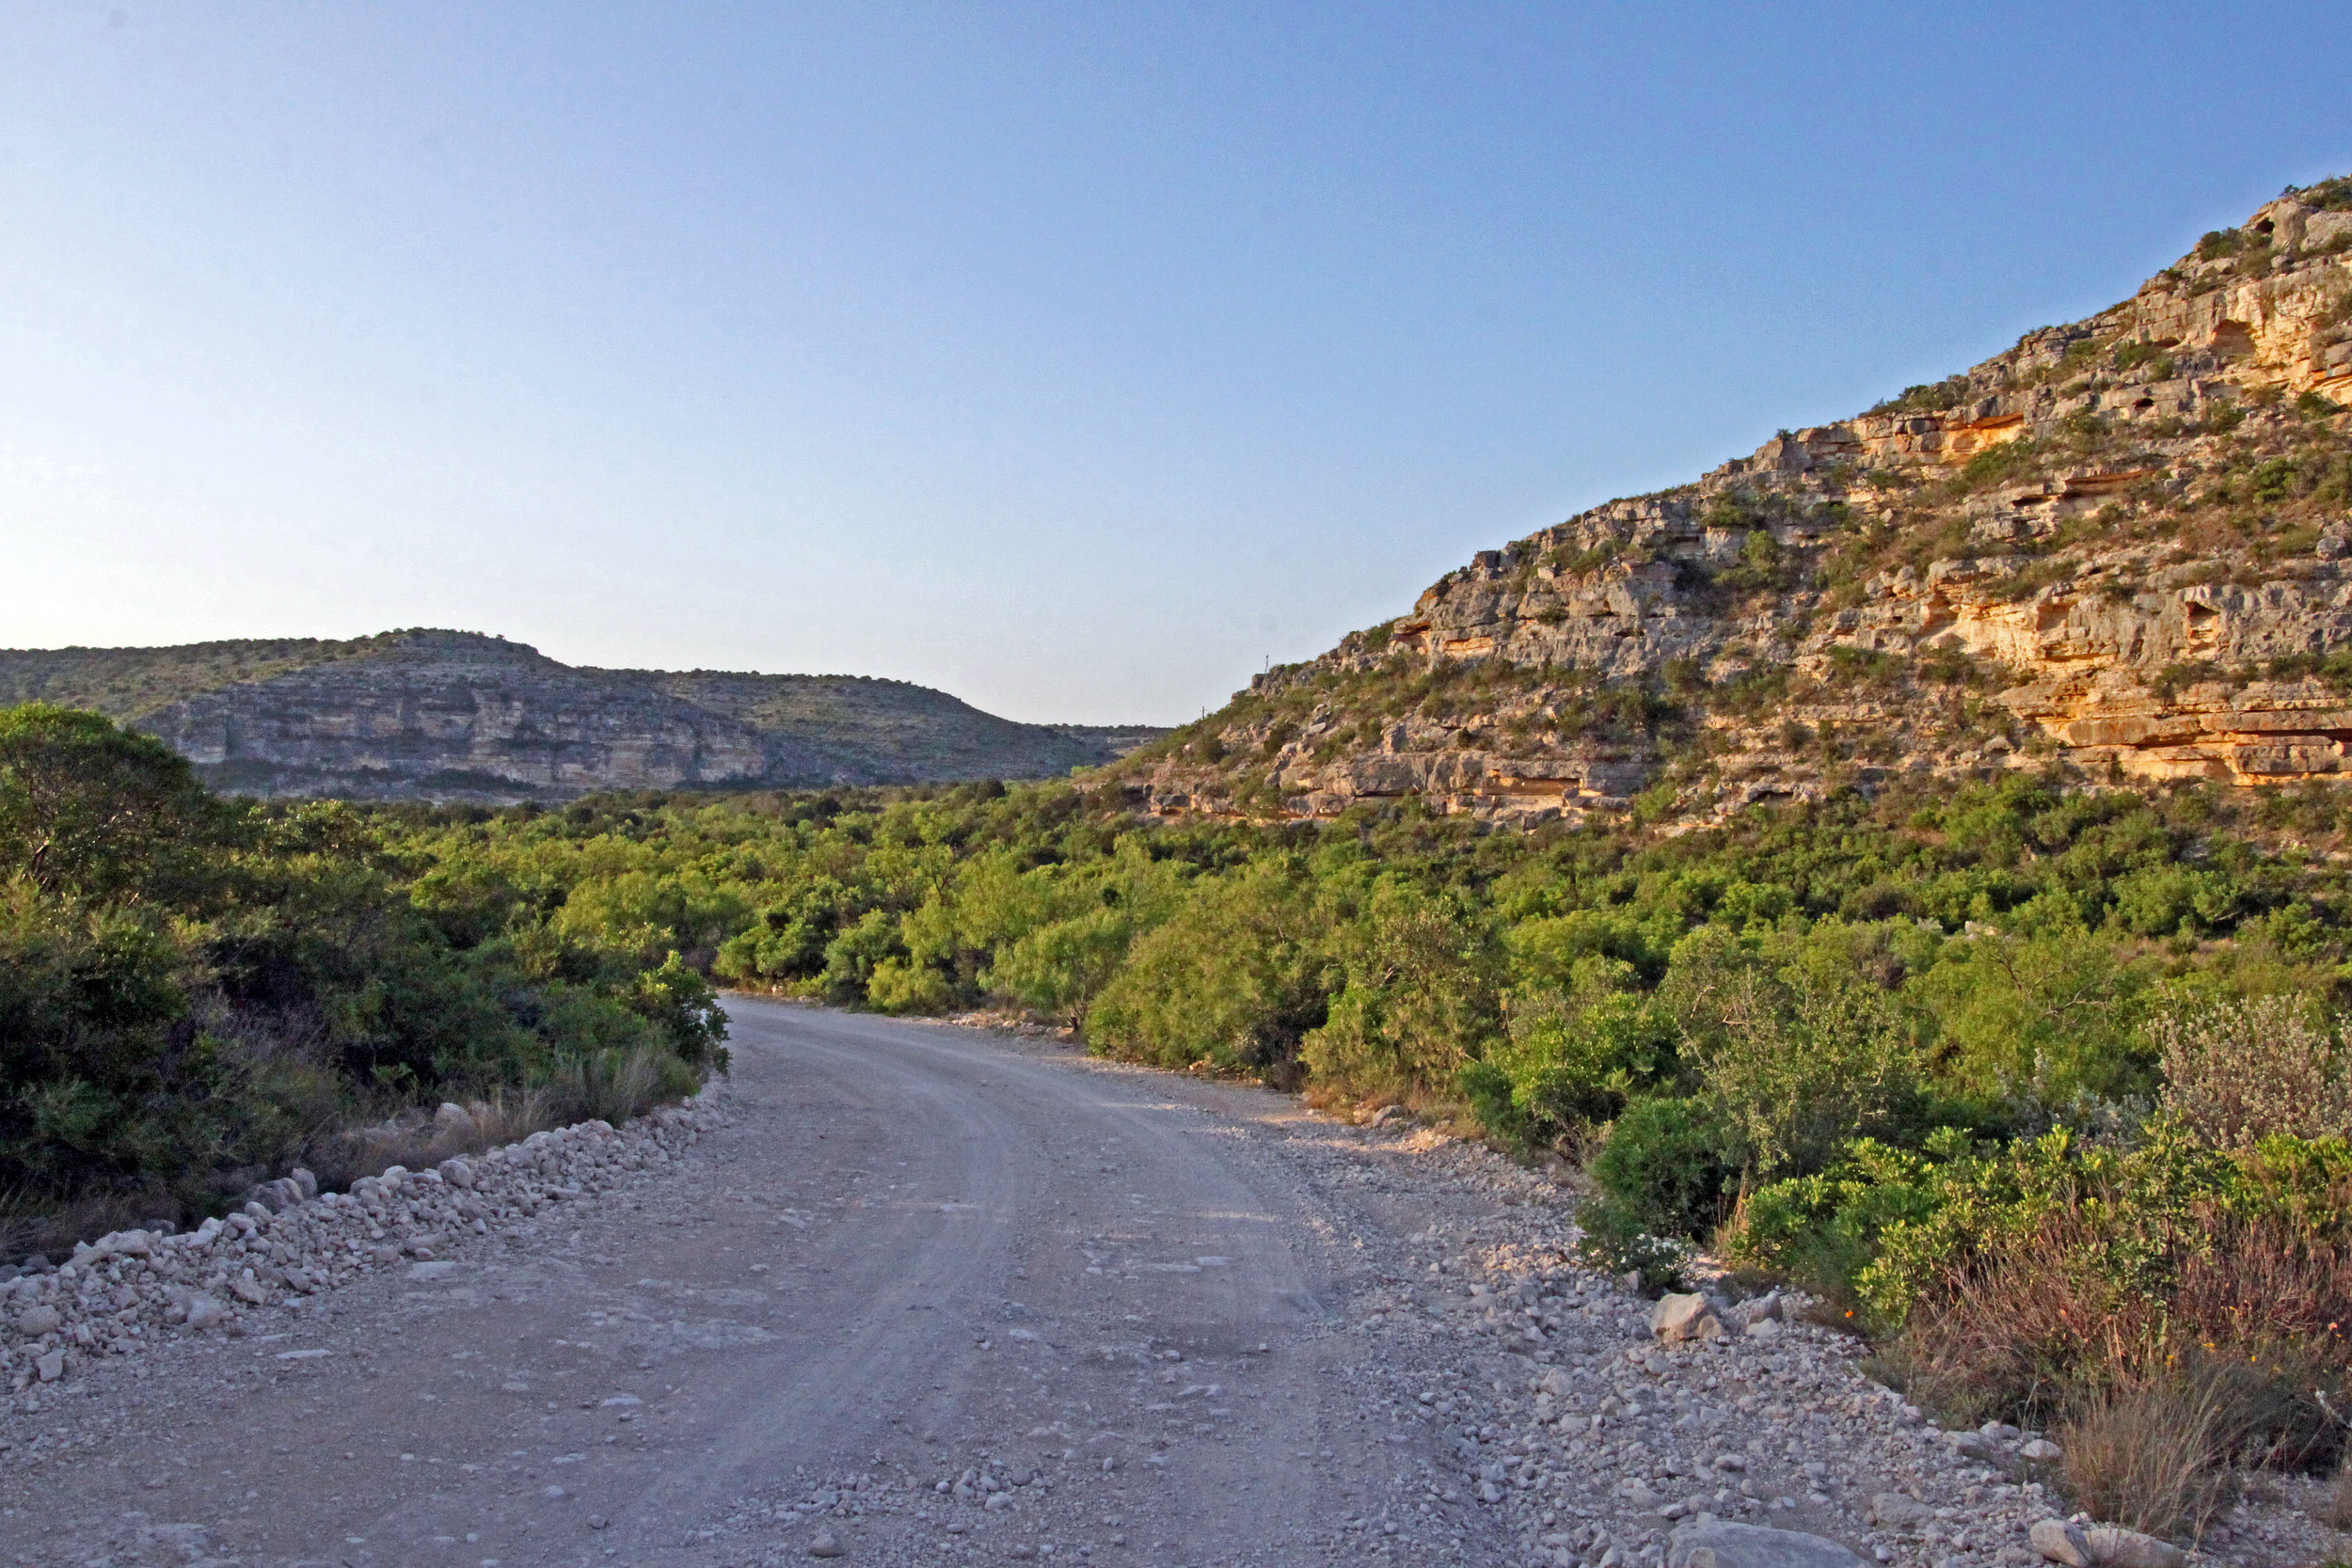 If you visit the Devils River State Natural Area, you will have to hike 0.9 miles to the banks of the river on a gravel road. Don't forget, you will have to hike with your kayak too.